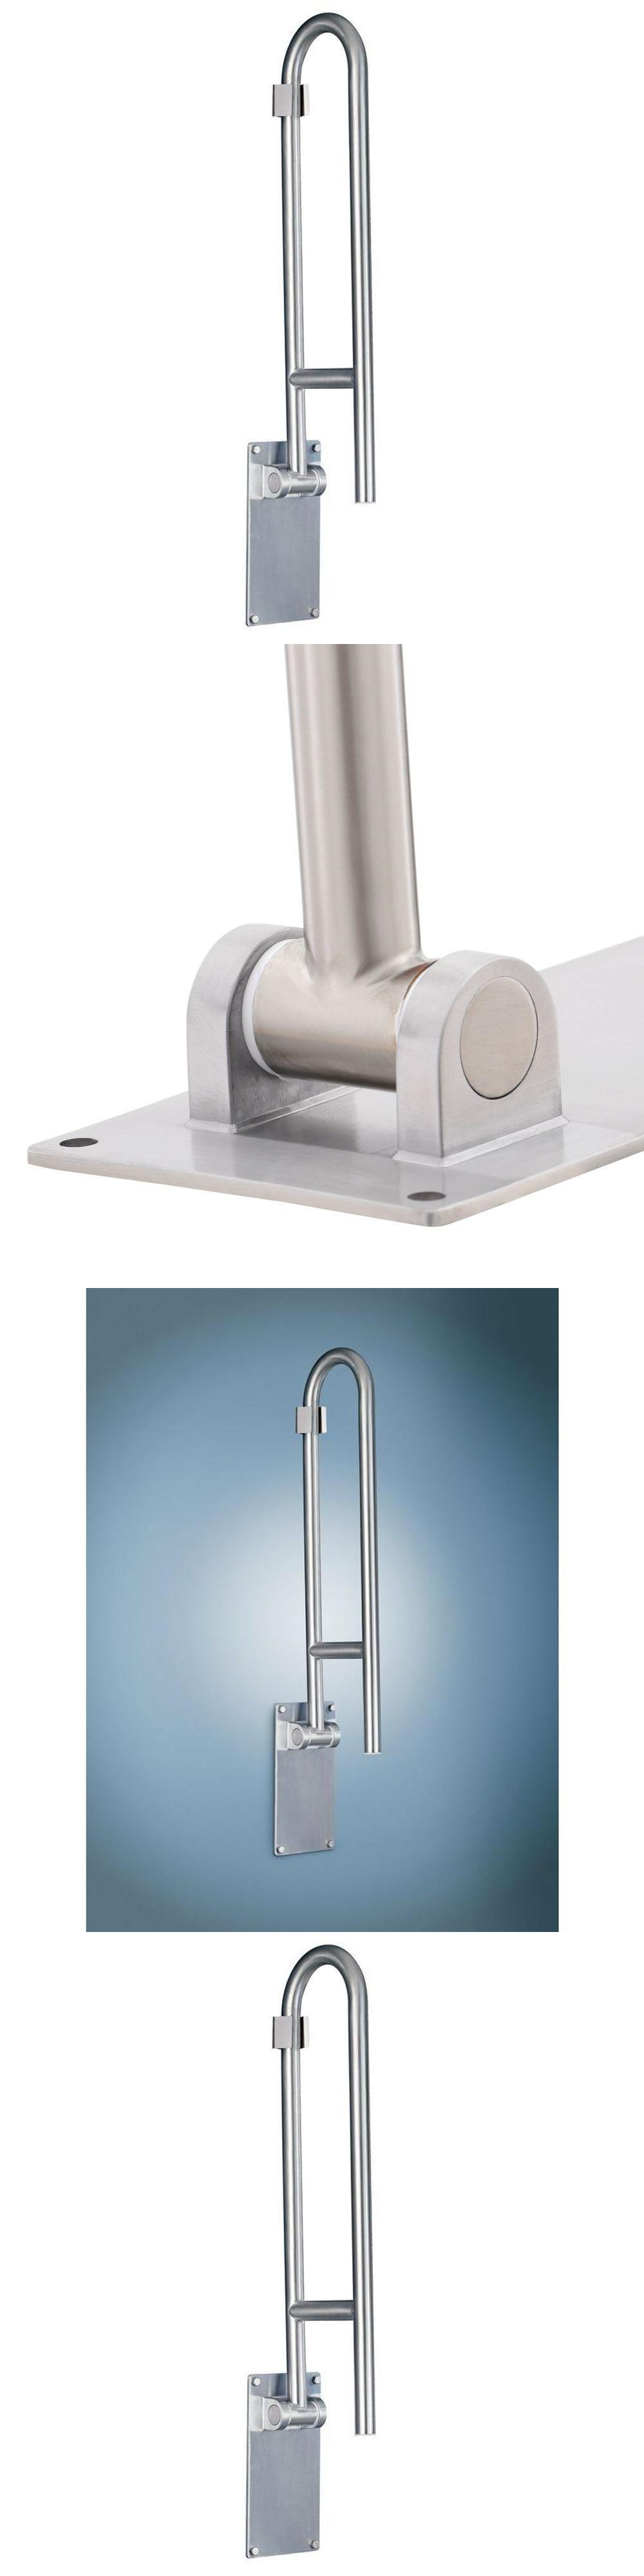 Other accessibility fixtures safer grip bath and shower handle flip